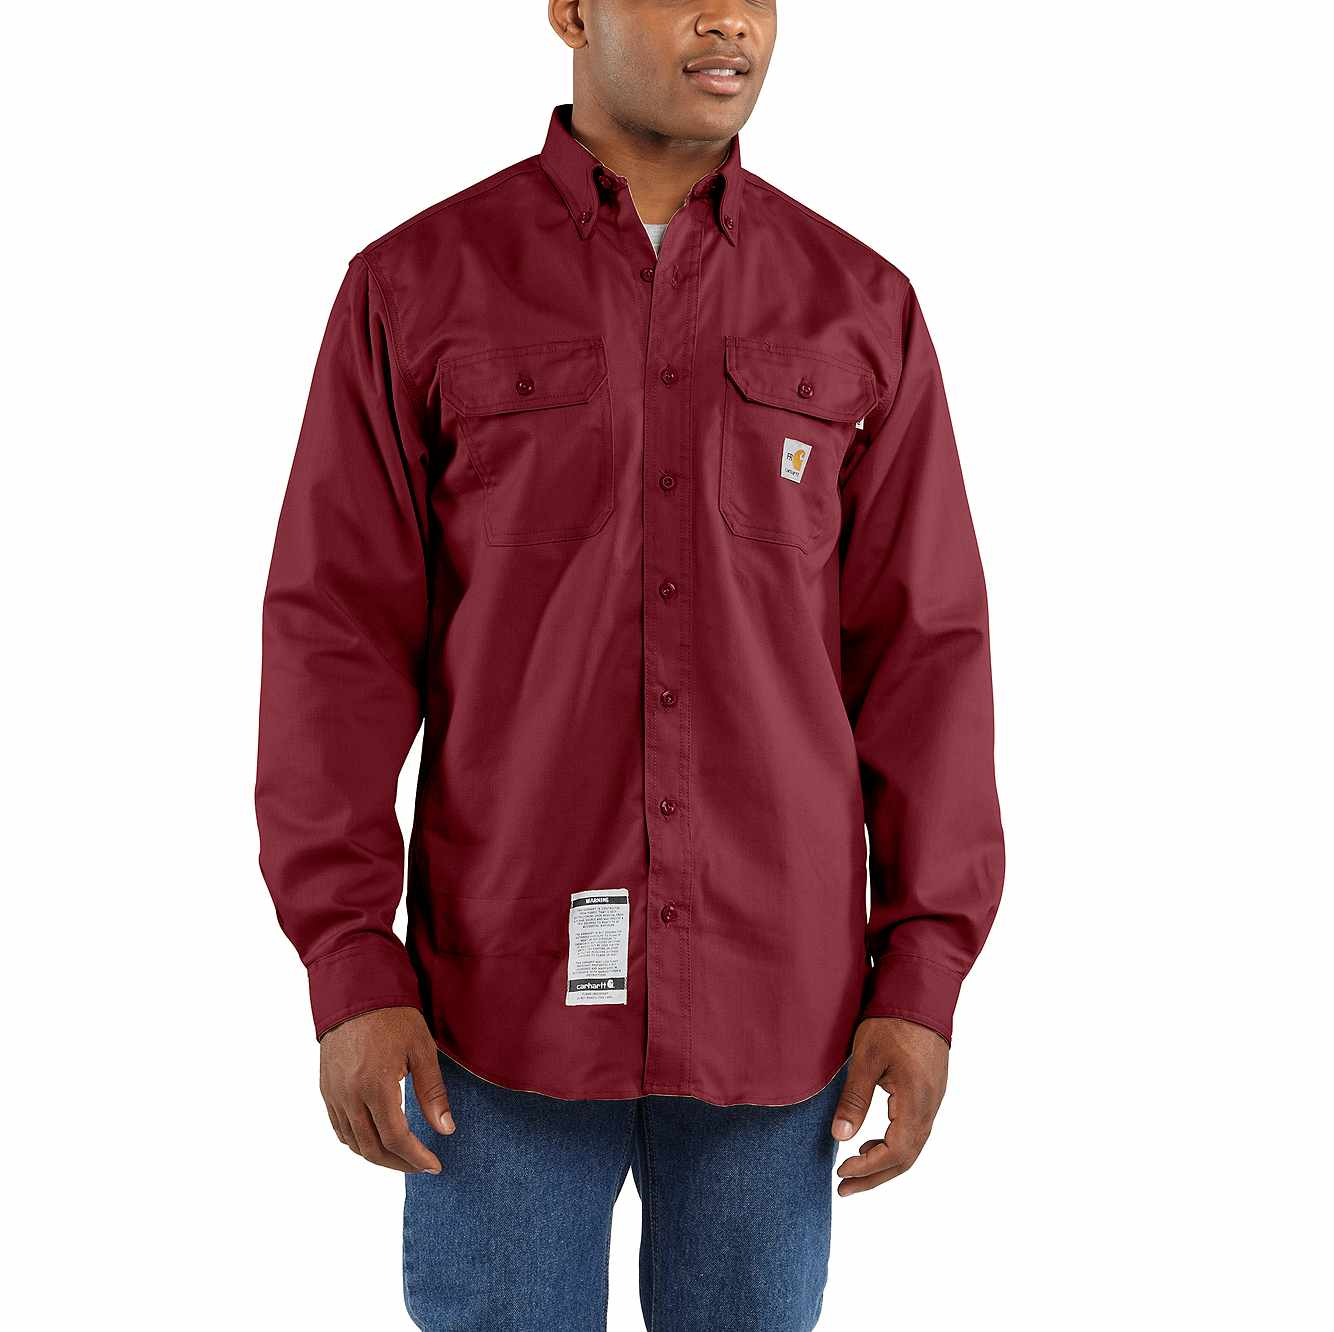 Picture of Flame-Resistant Twill Shirt with Pocket Flap in Dark Crimson